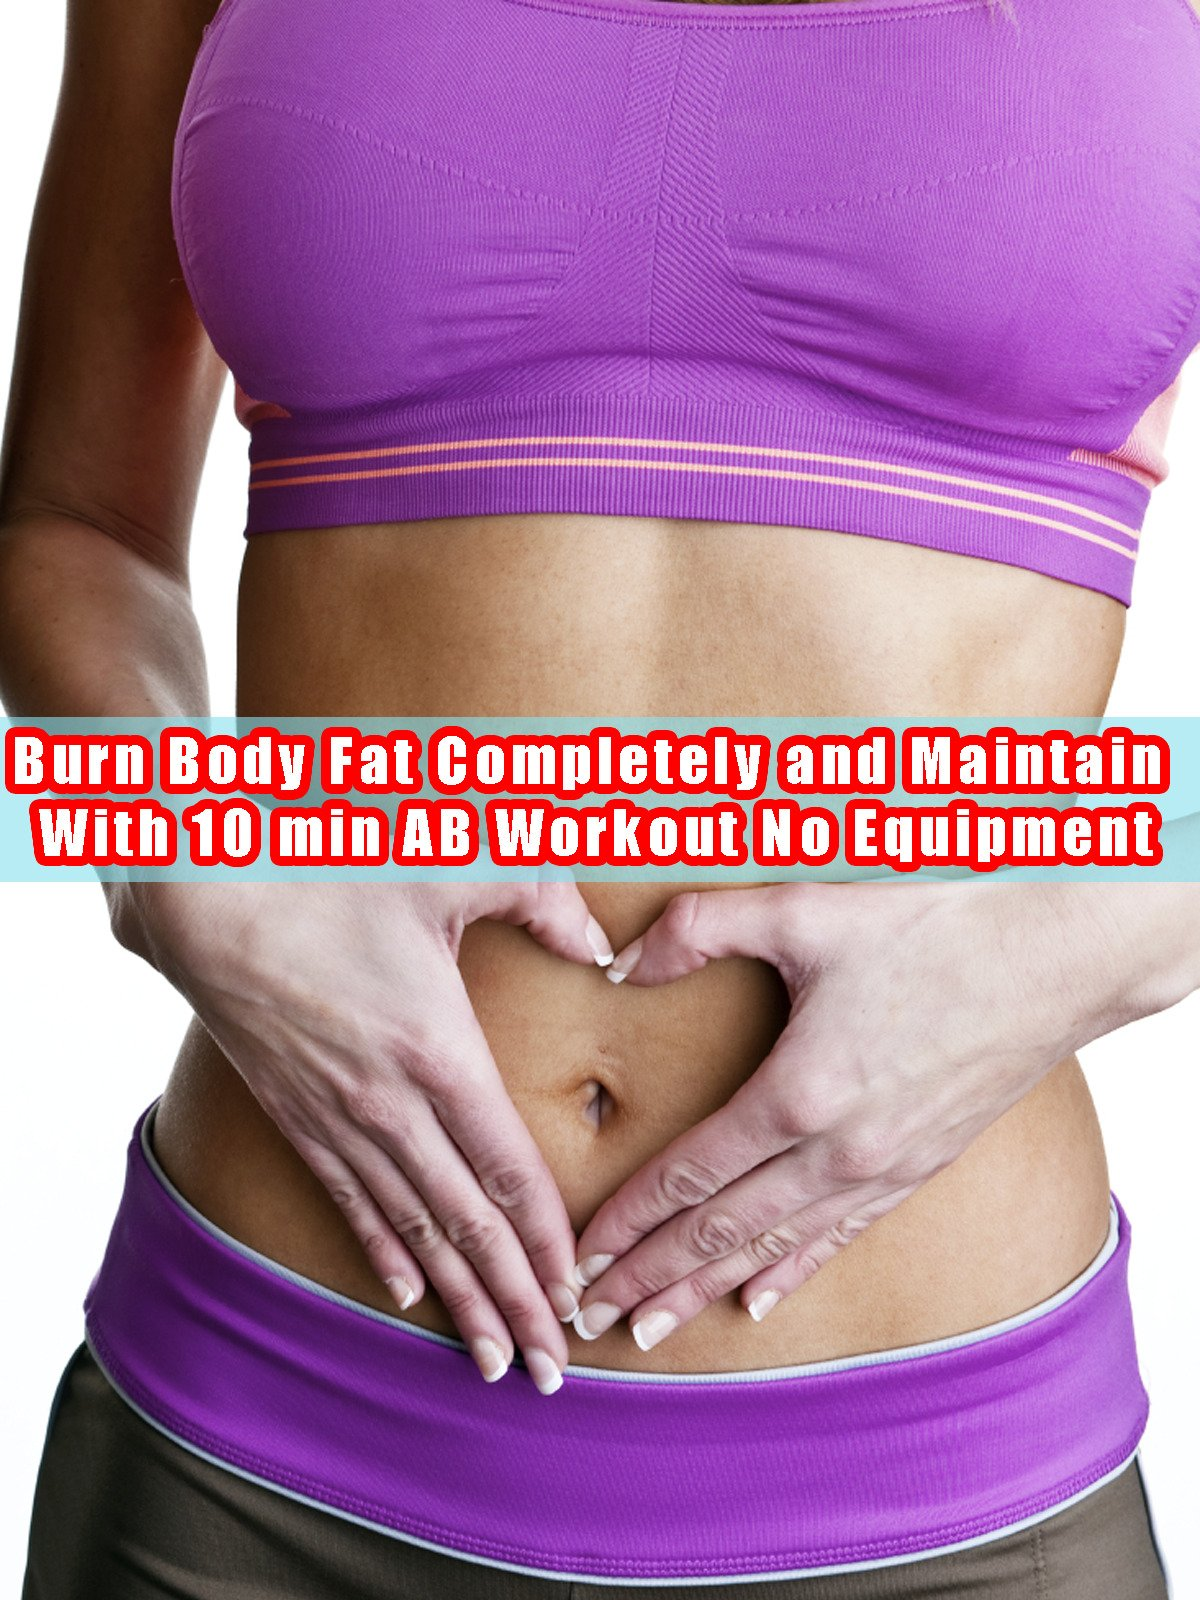 Burn Body Fat Completely and Maintain With 10 min AB Workout No Equipment